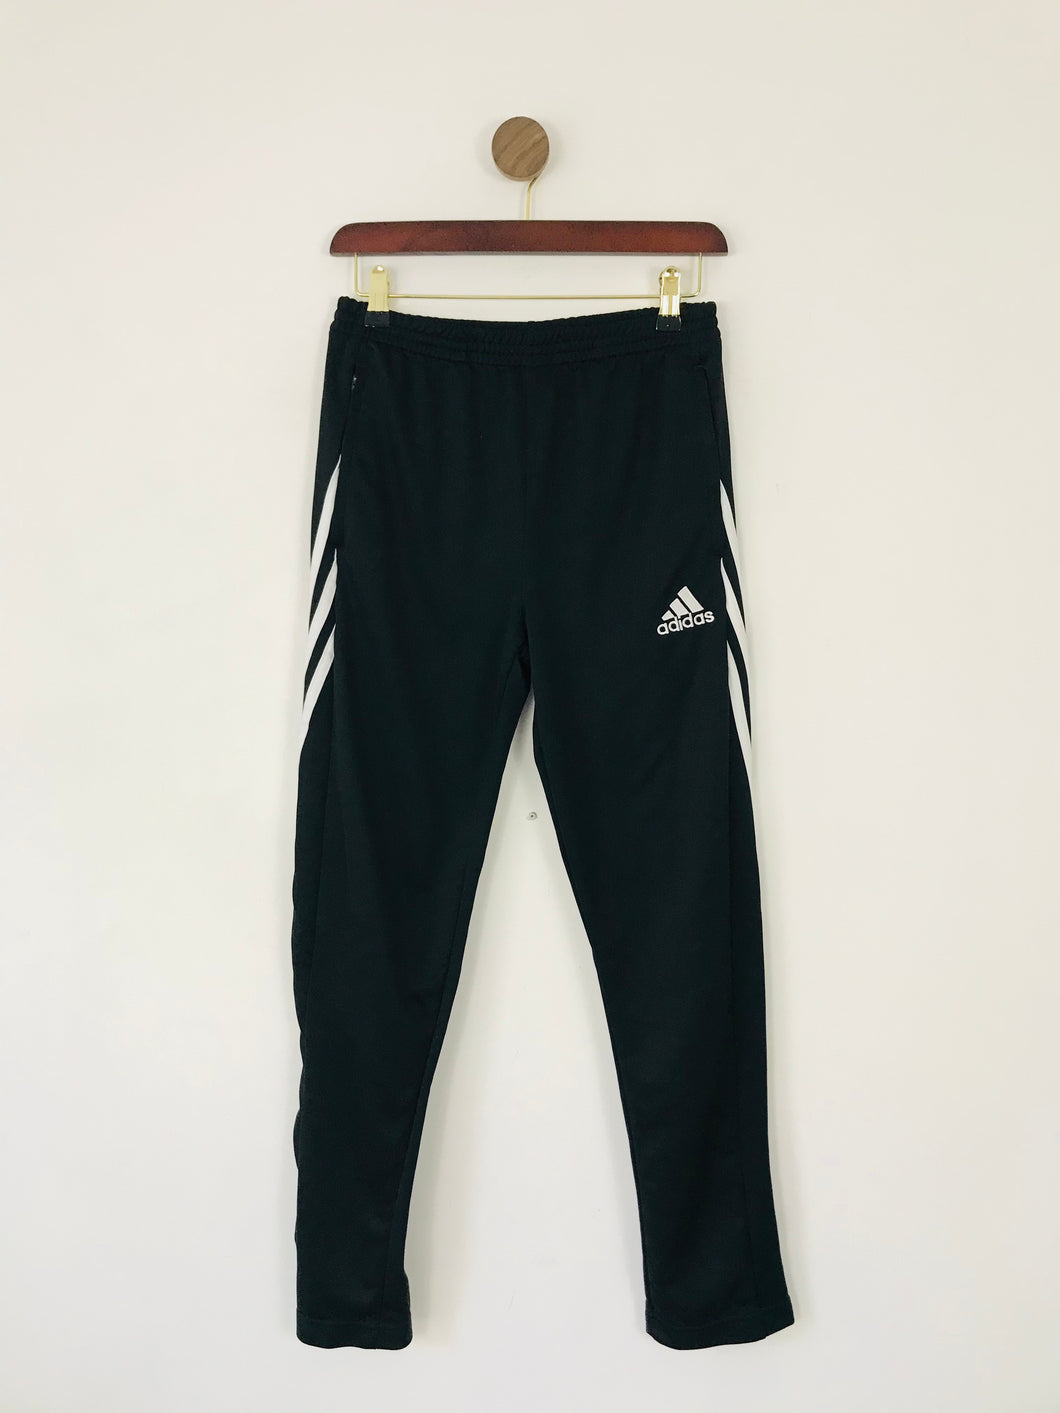 Adidas Youth Joggers Tracksuit Bottoms | YXL 13-14Y | Black